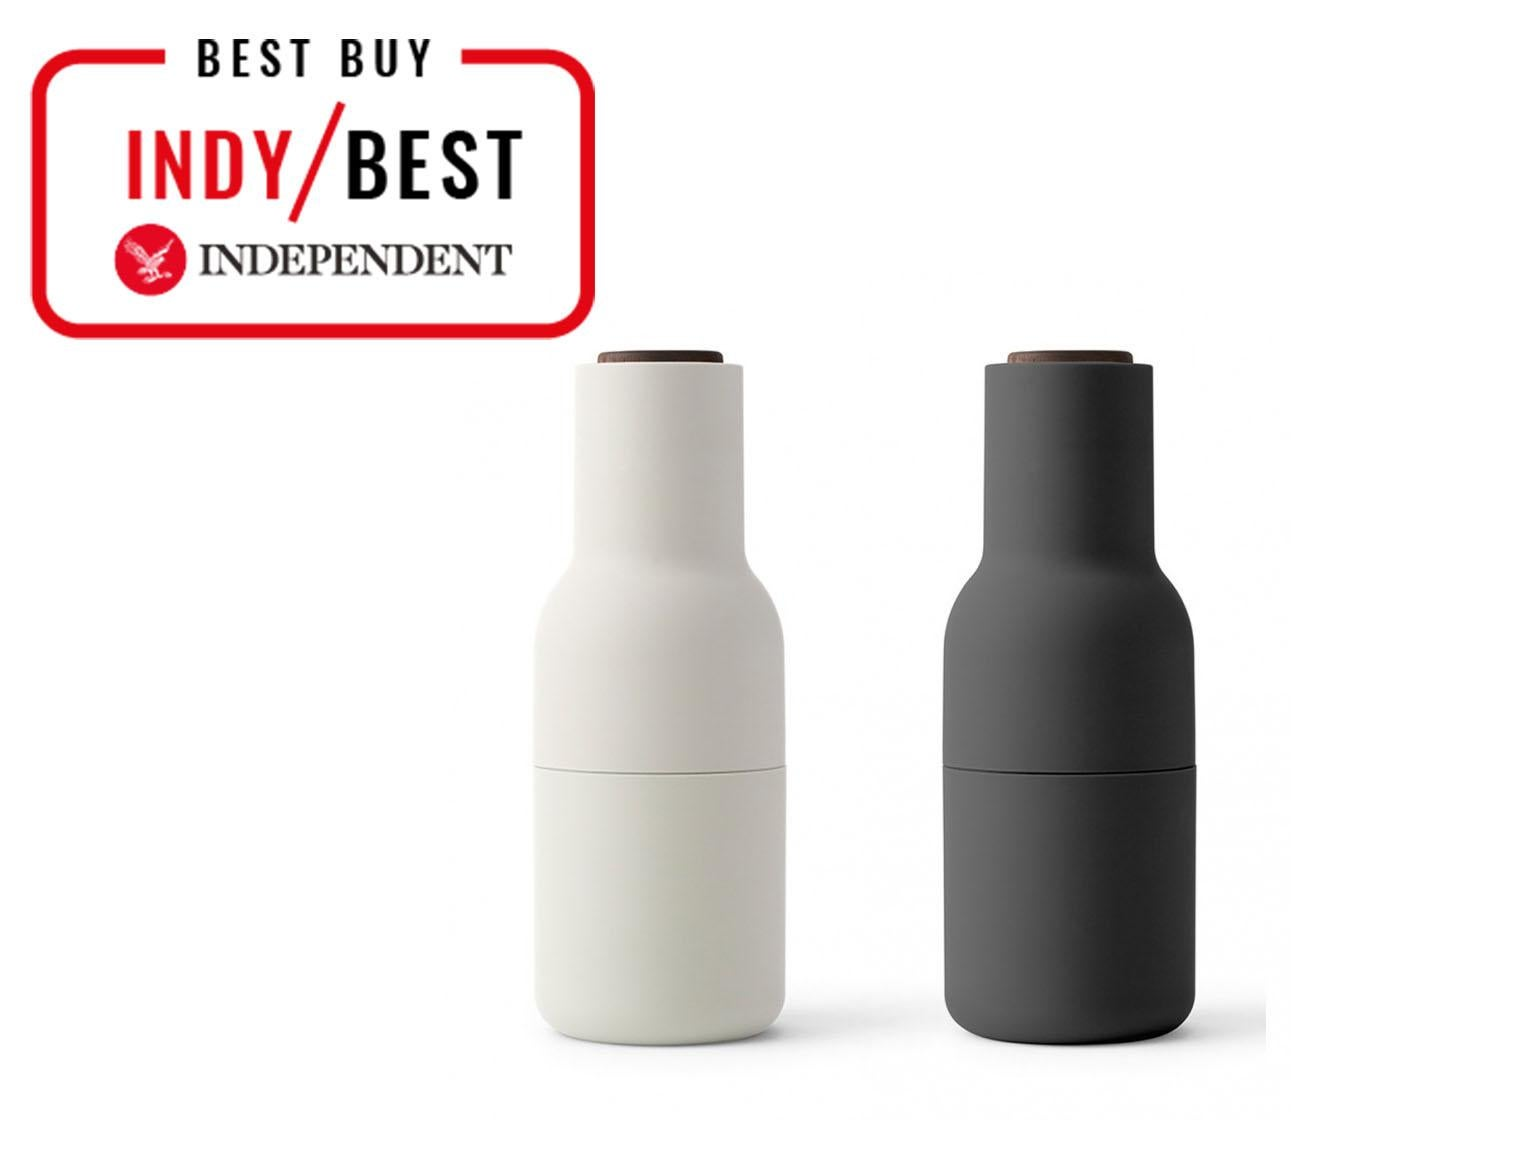 8 Best Salt And Pepper Mills The Independent